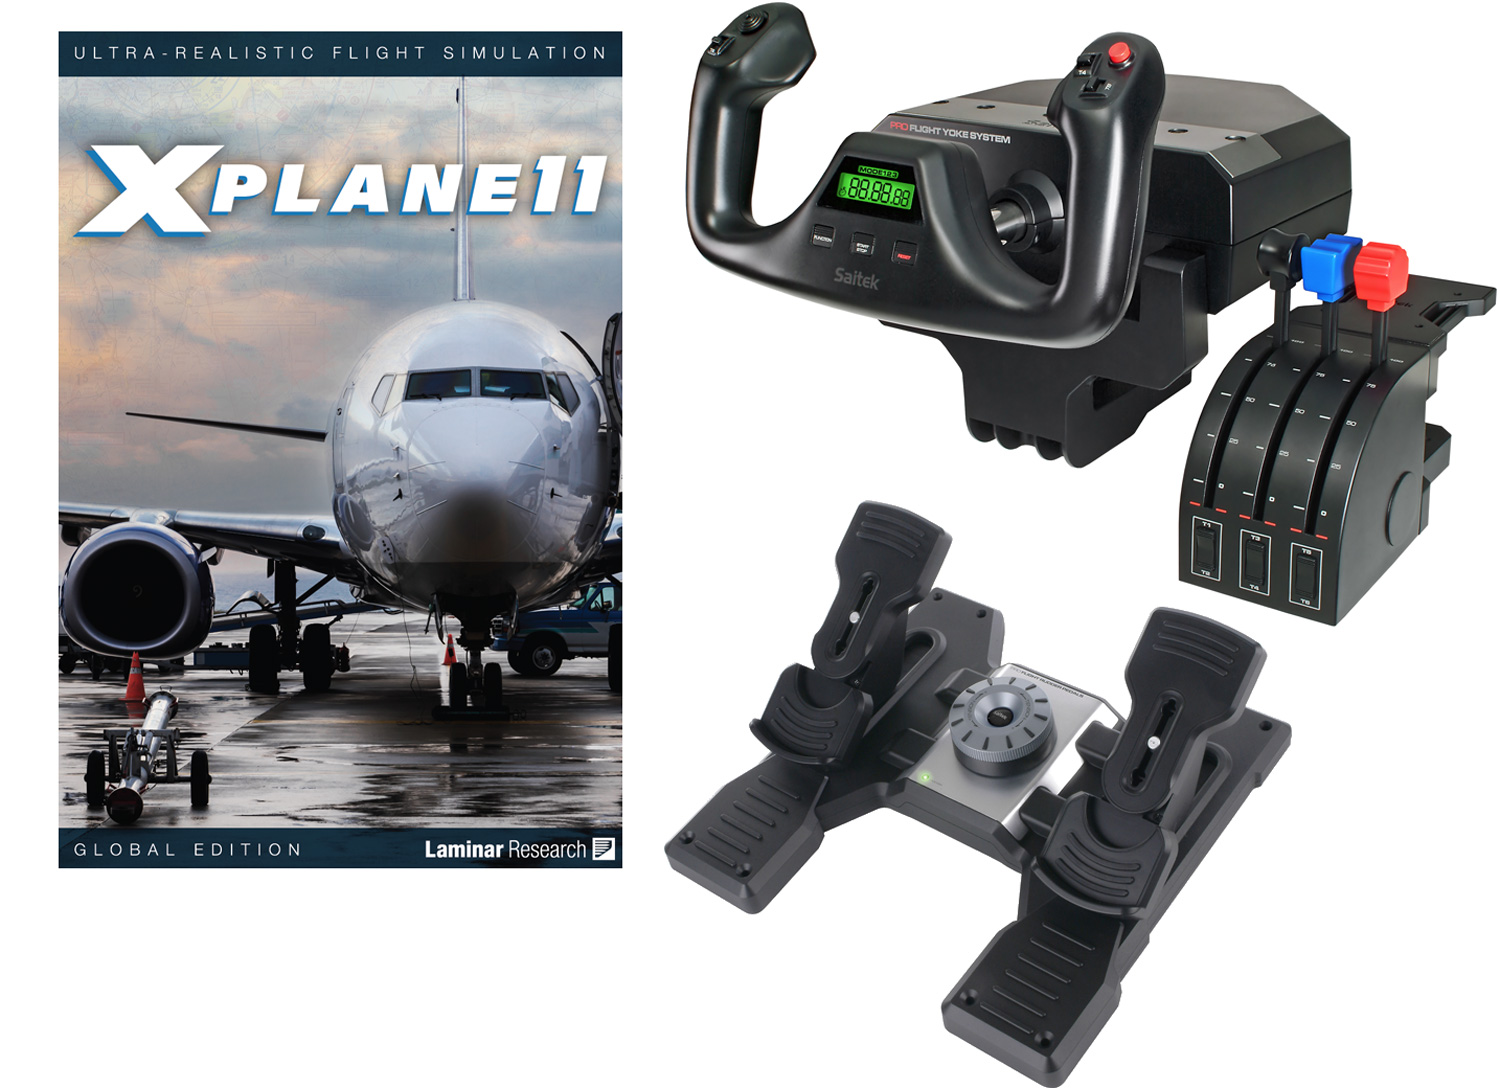 Deluxe Saitek Flight Simulator Bundle - X-Plane 11 DVDs, Yoke & Throttle,  and Rudders